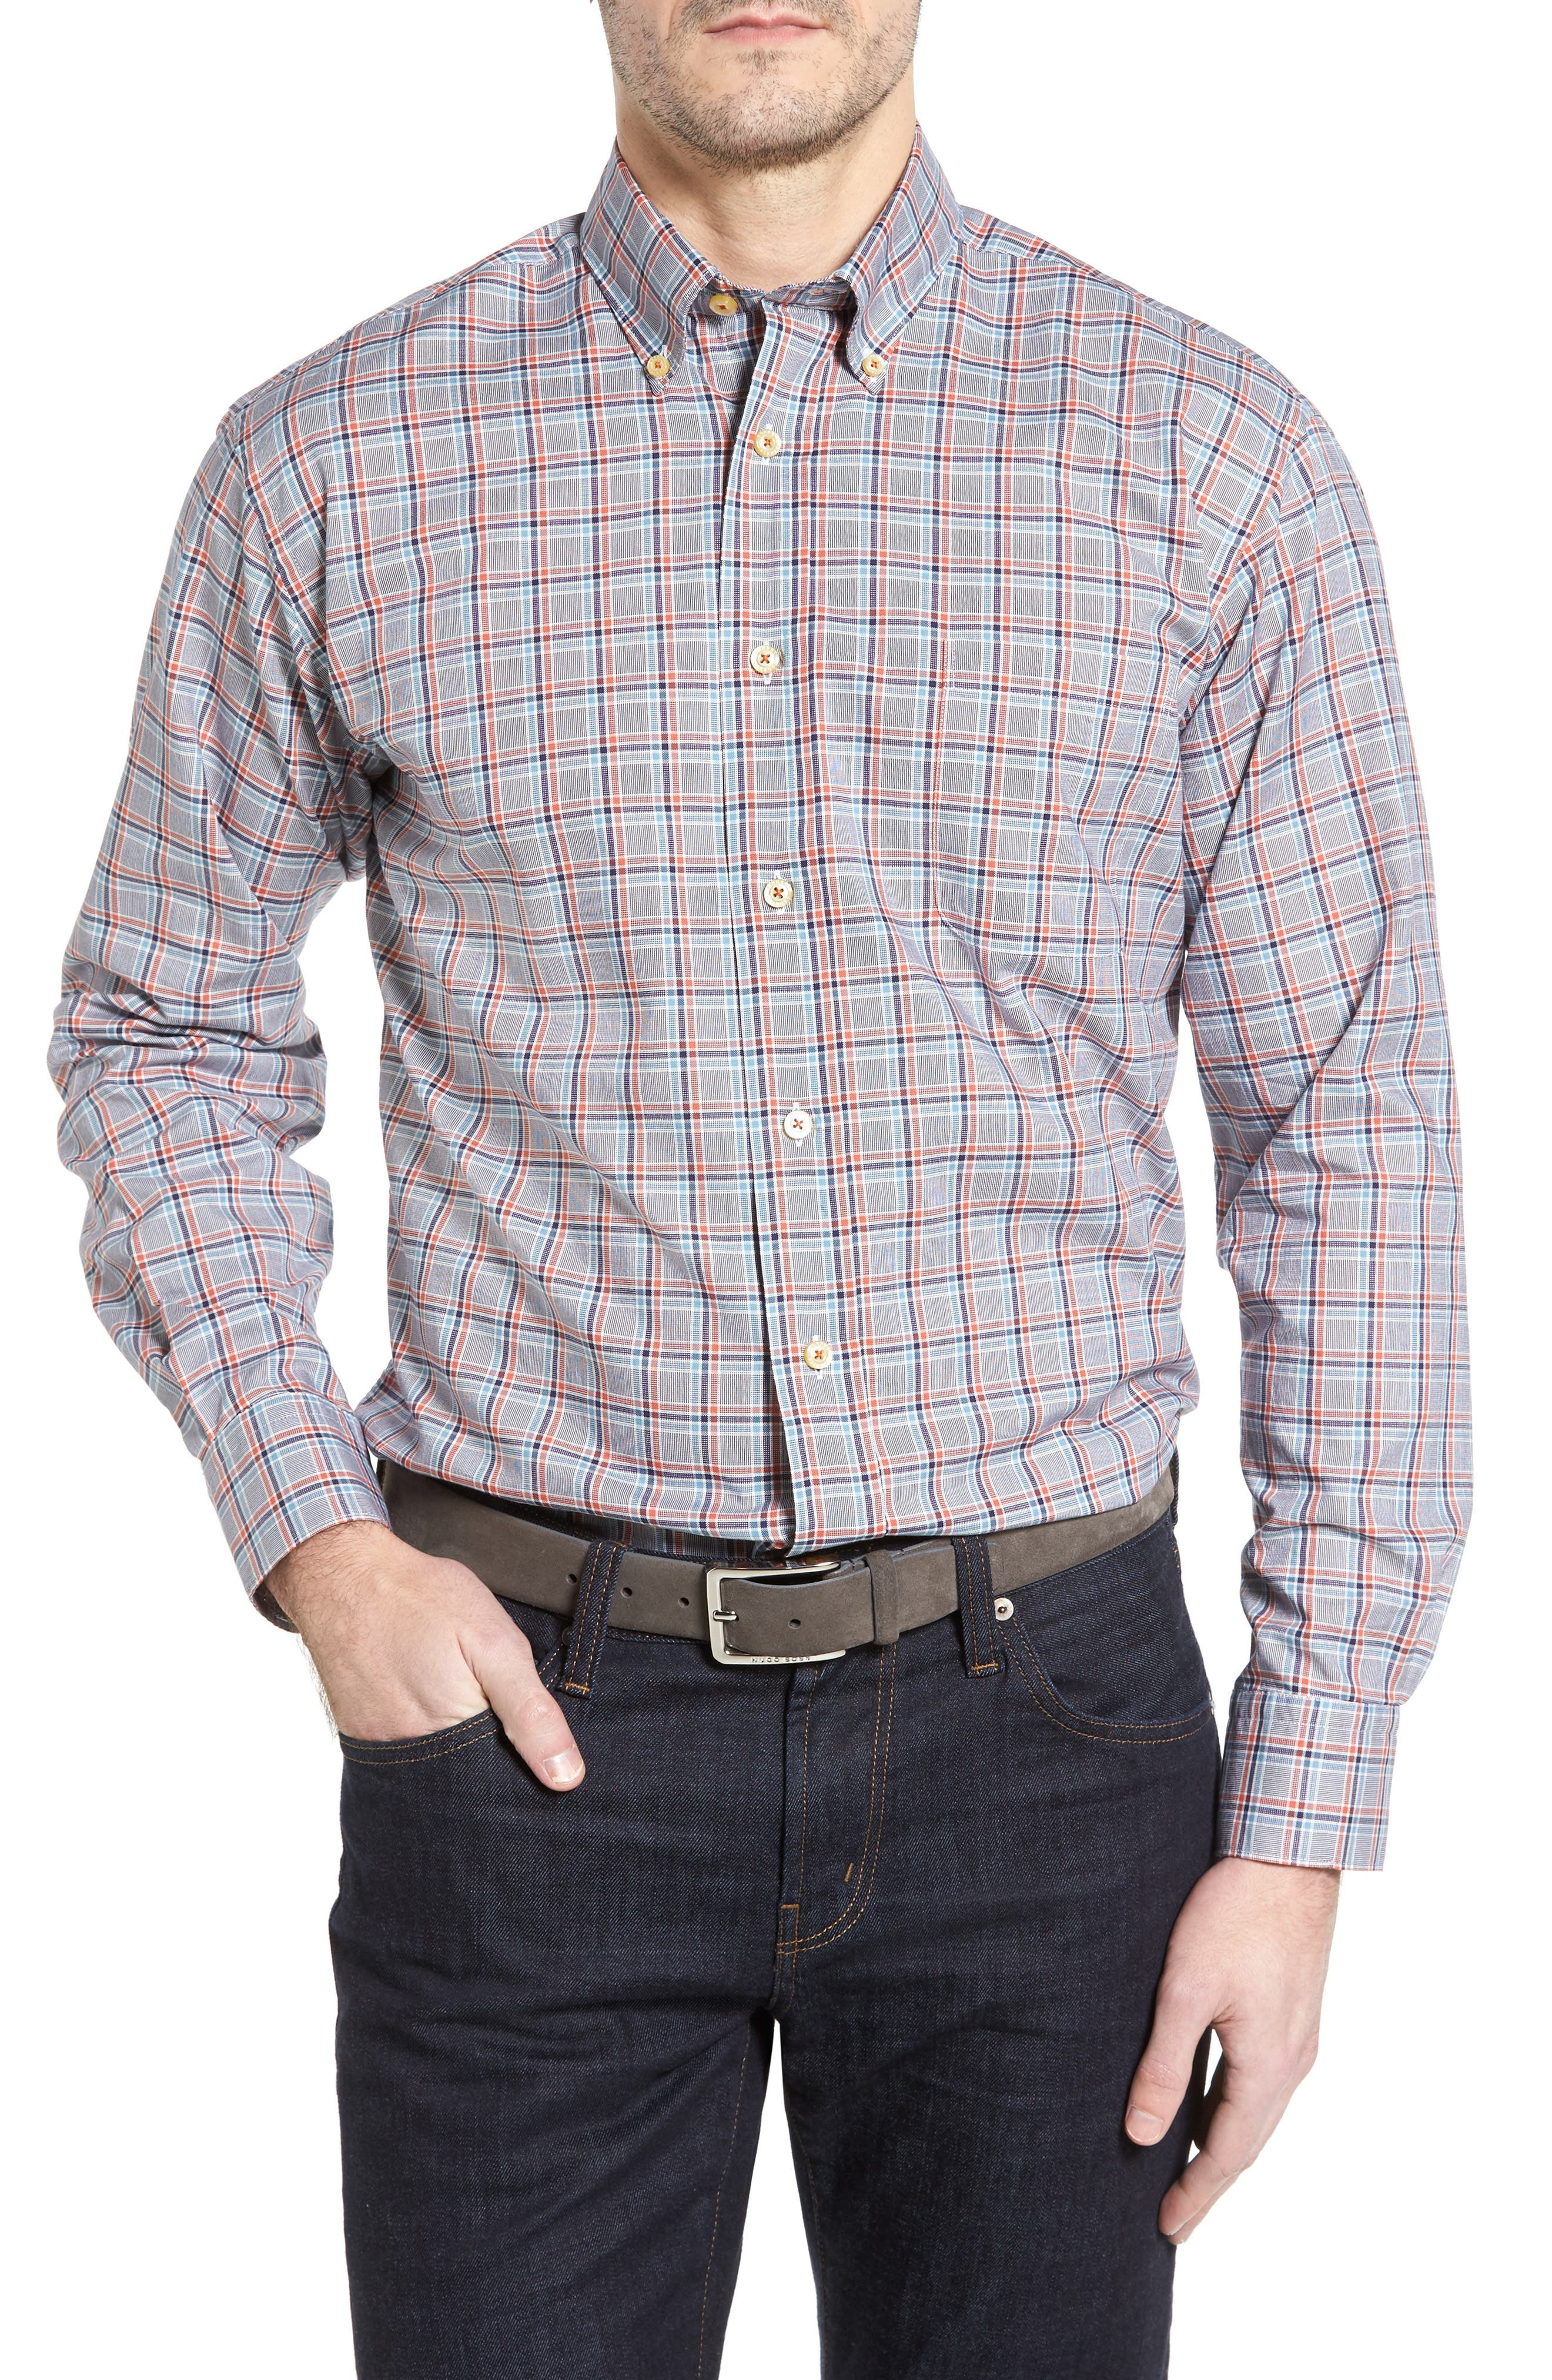 Anderson Classic Fit Plaid Oxford Sport Shirt,                             Main thumbnail 1, color,                             401